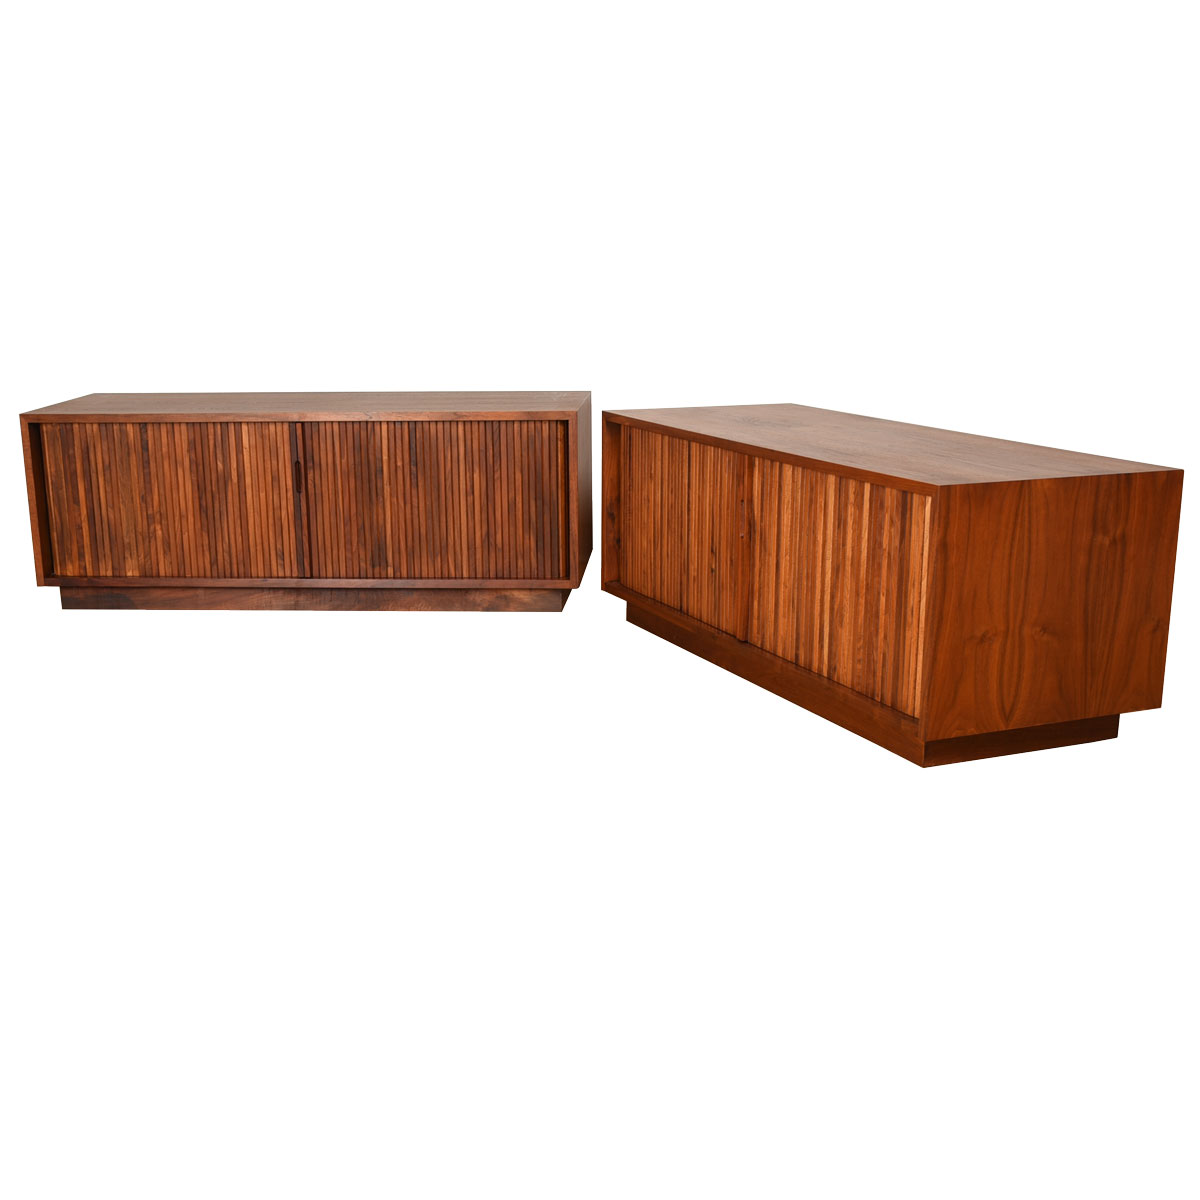 Pair of Milo Baughman for Glenn of California Record / Media Cabinets